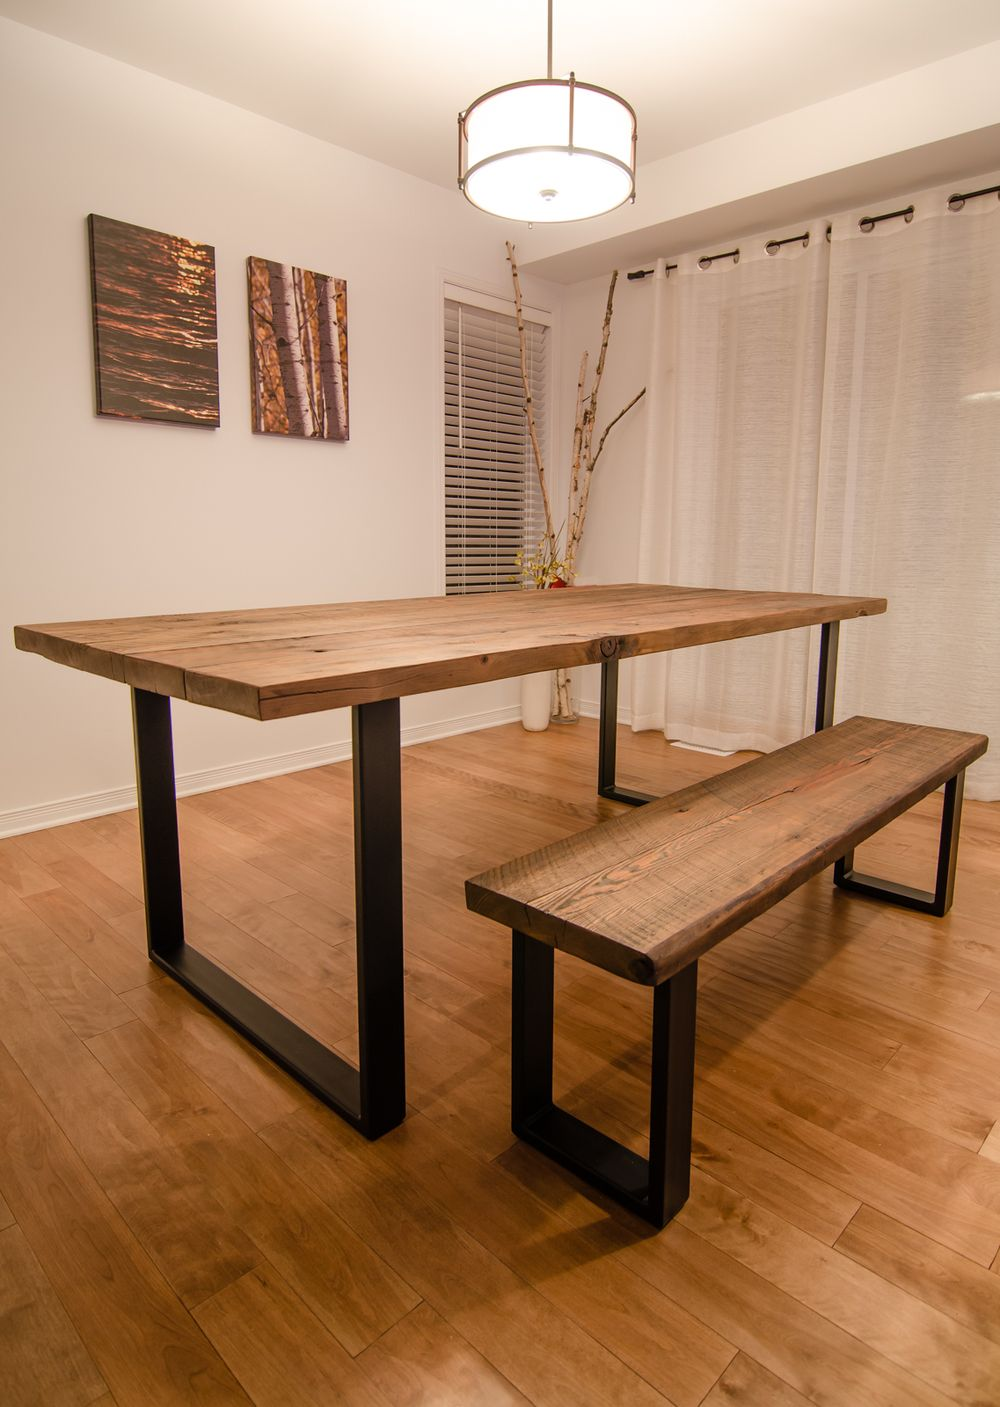 Table Top Is Usually Made With Reclaimed Hemlock Wood And Is